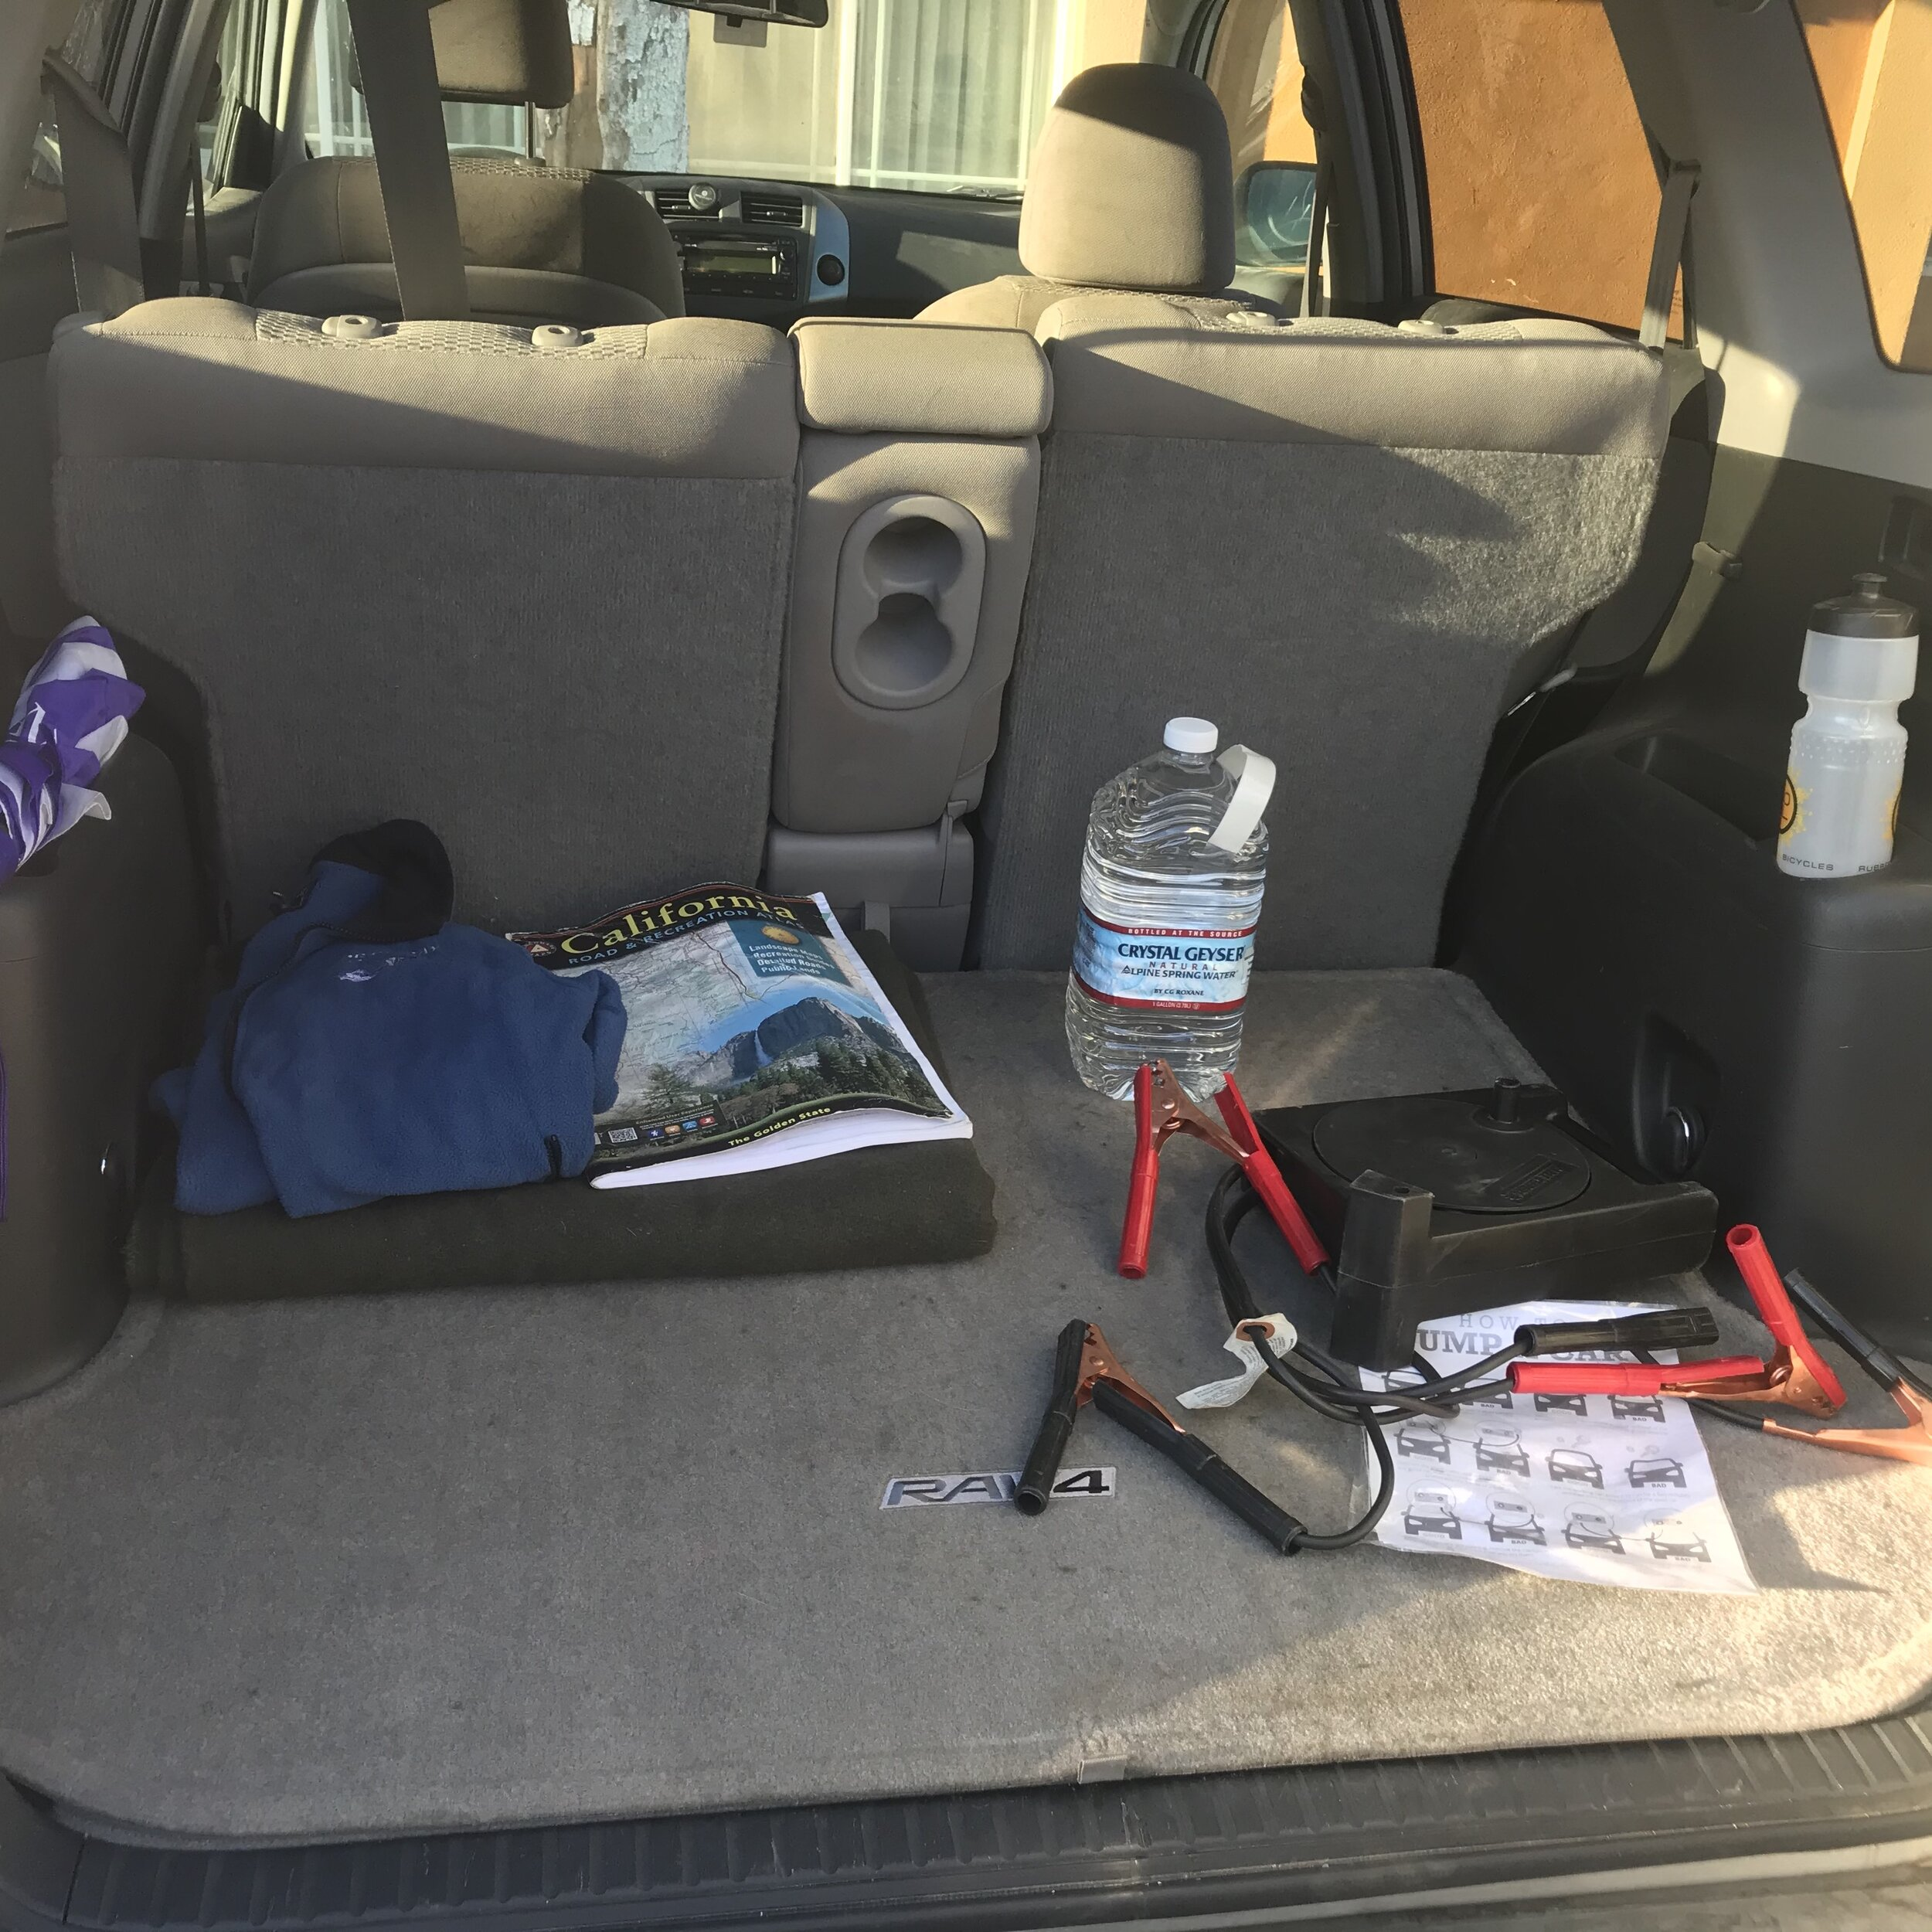 Wool blanket, fleece jacket, state maps, umbrella, water, & jumper cables with instructions